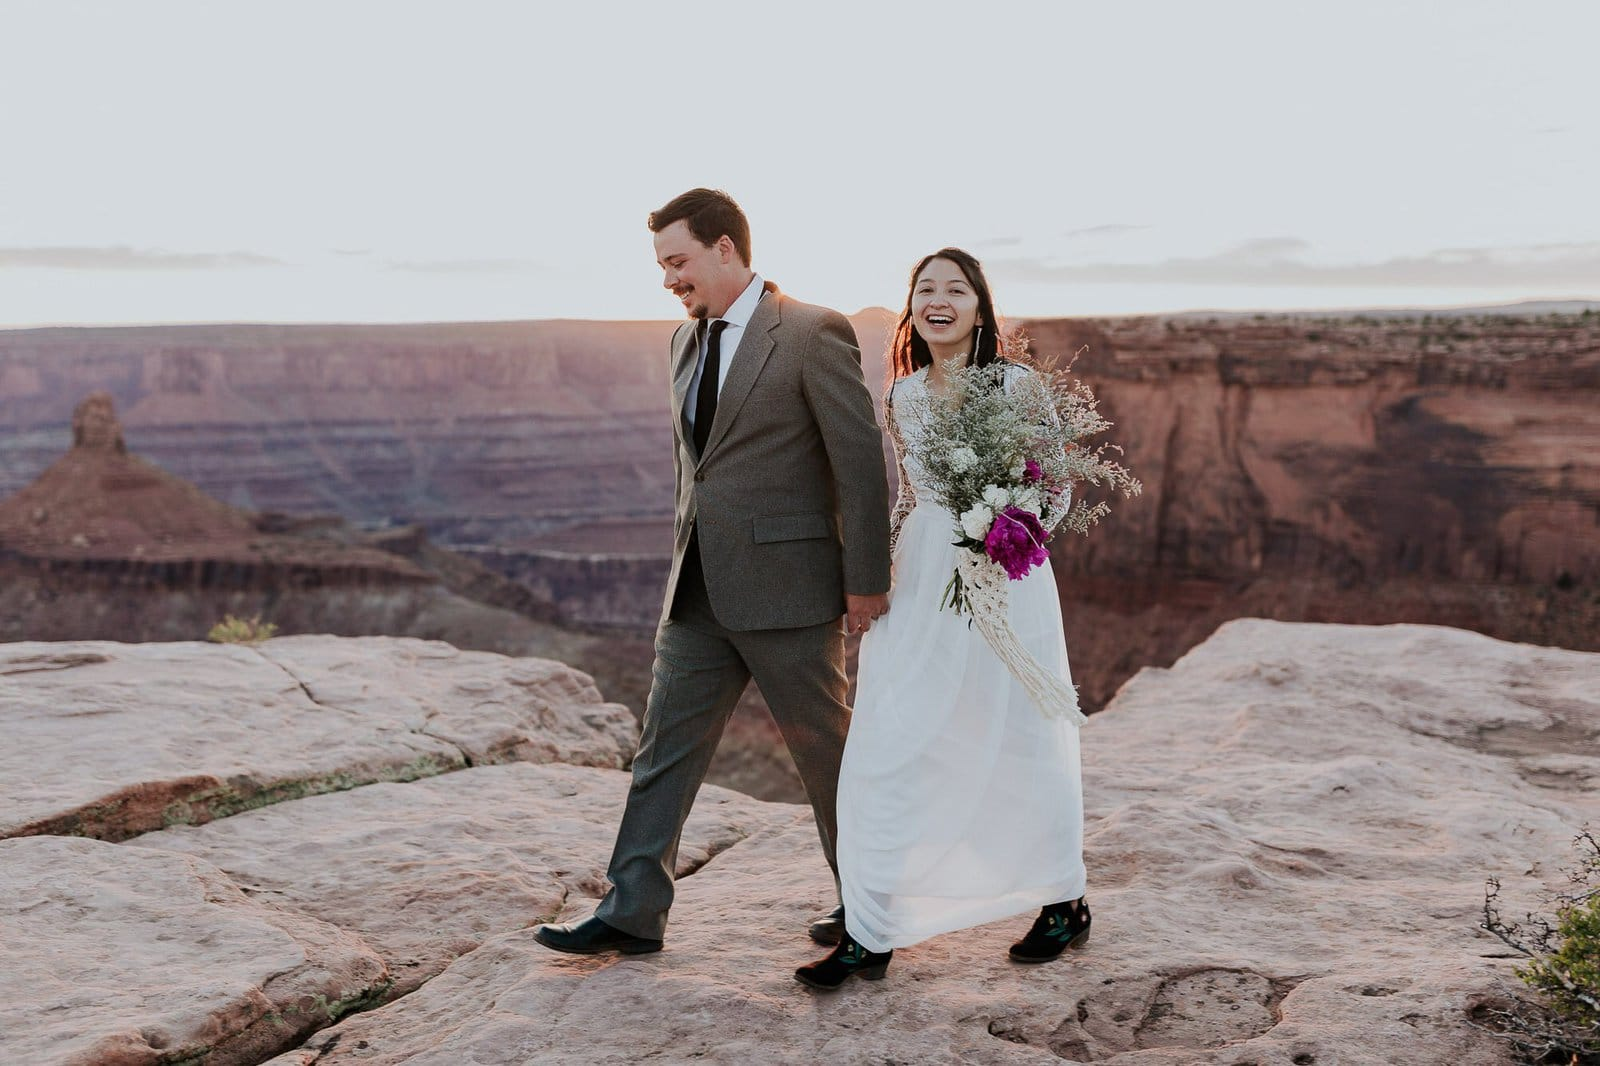 Adventure wedding photography in Utah.